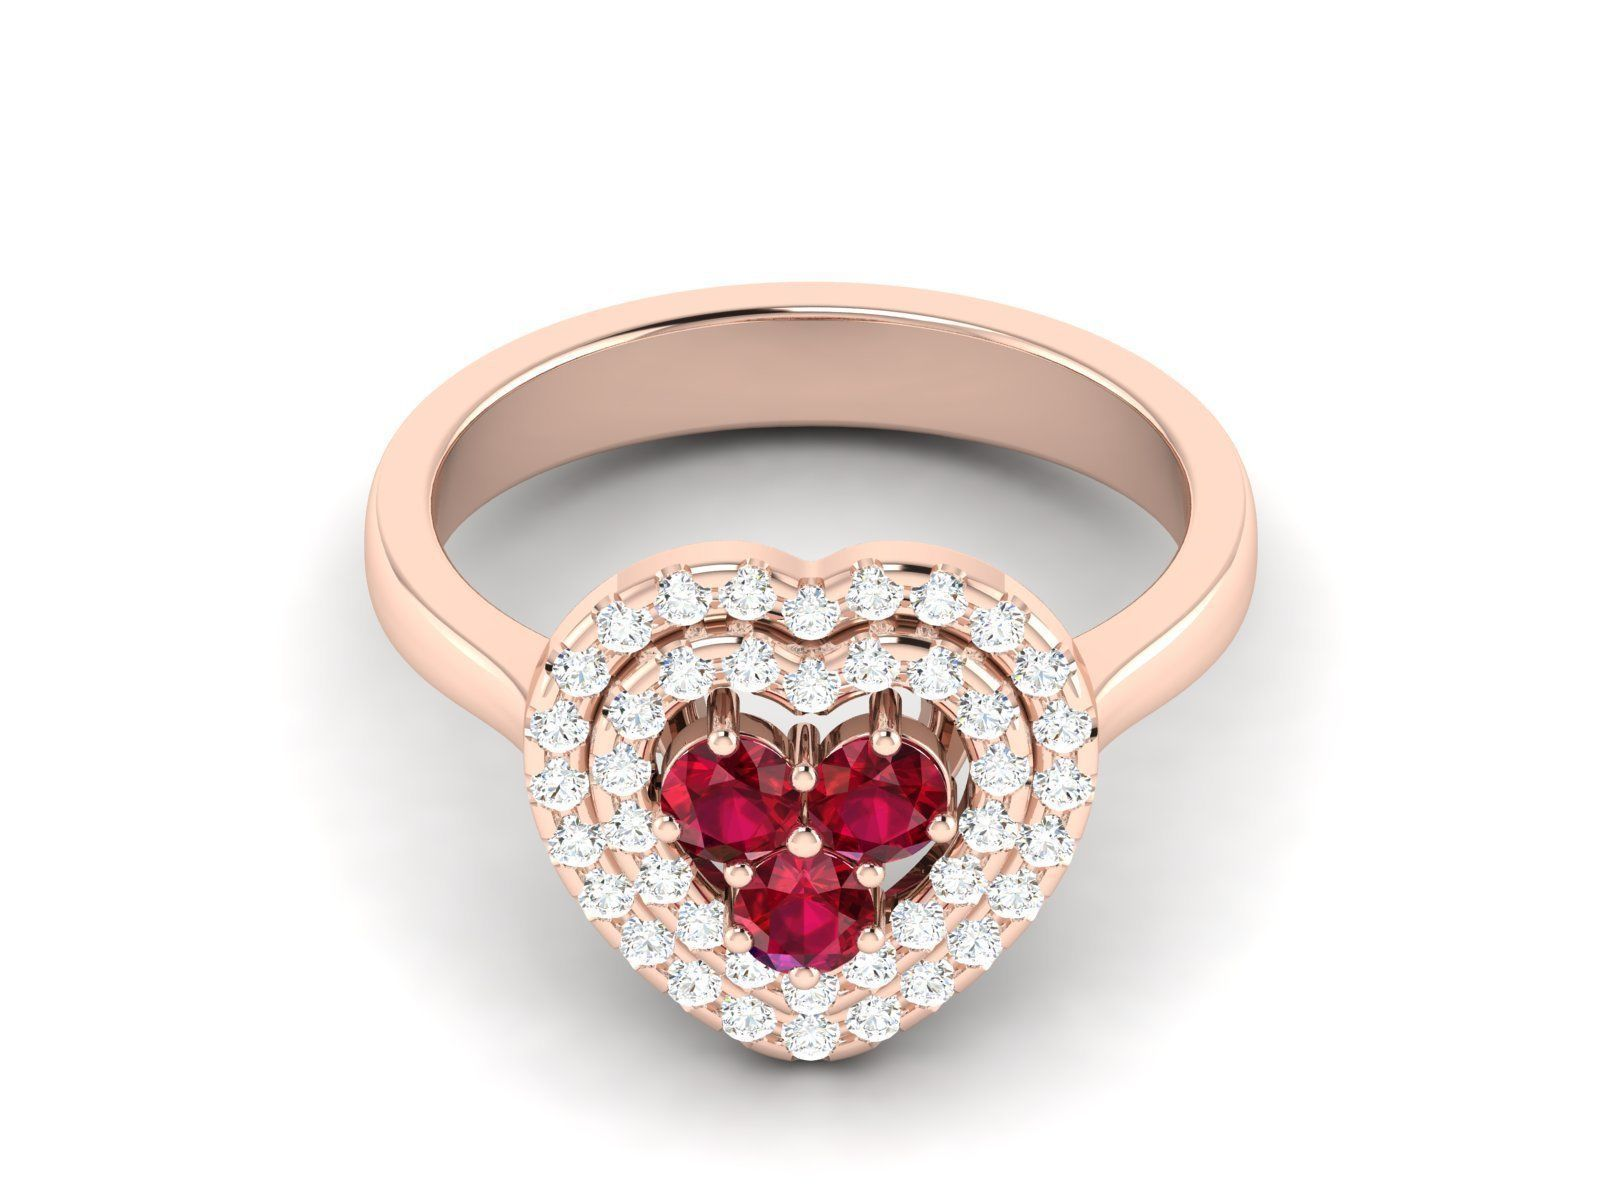 Women heart ring 3dm render detail